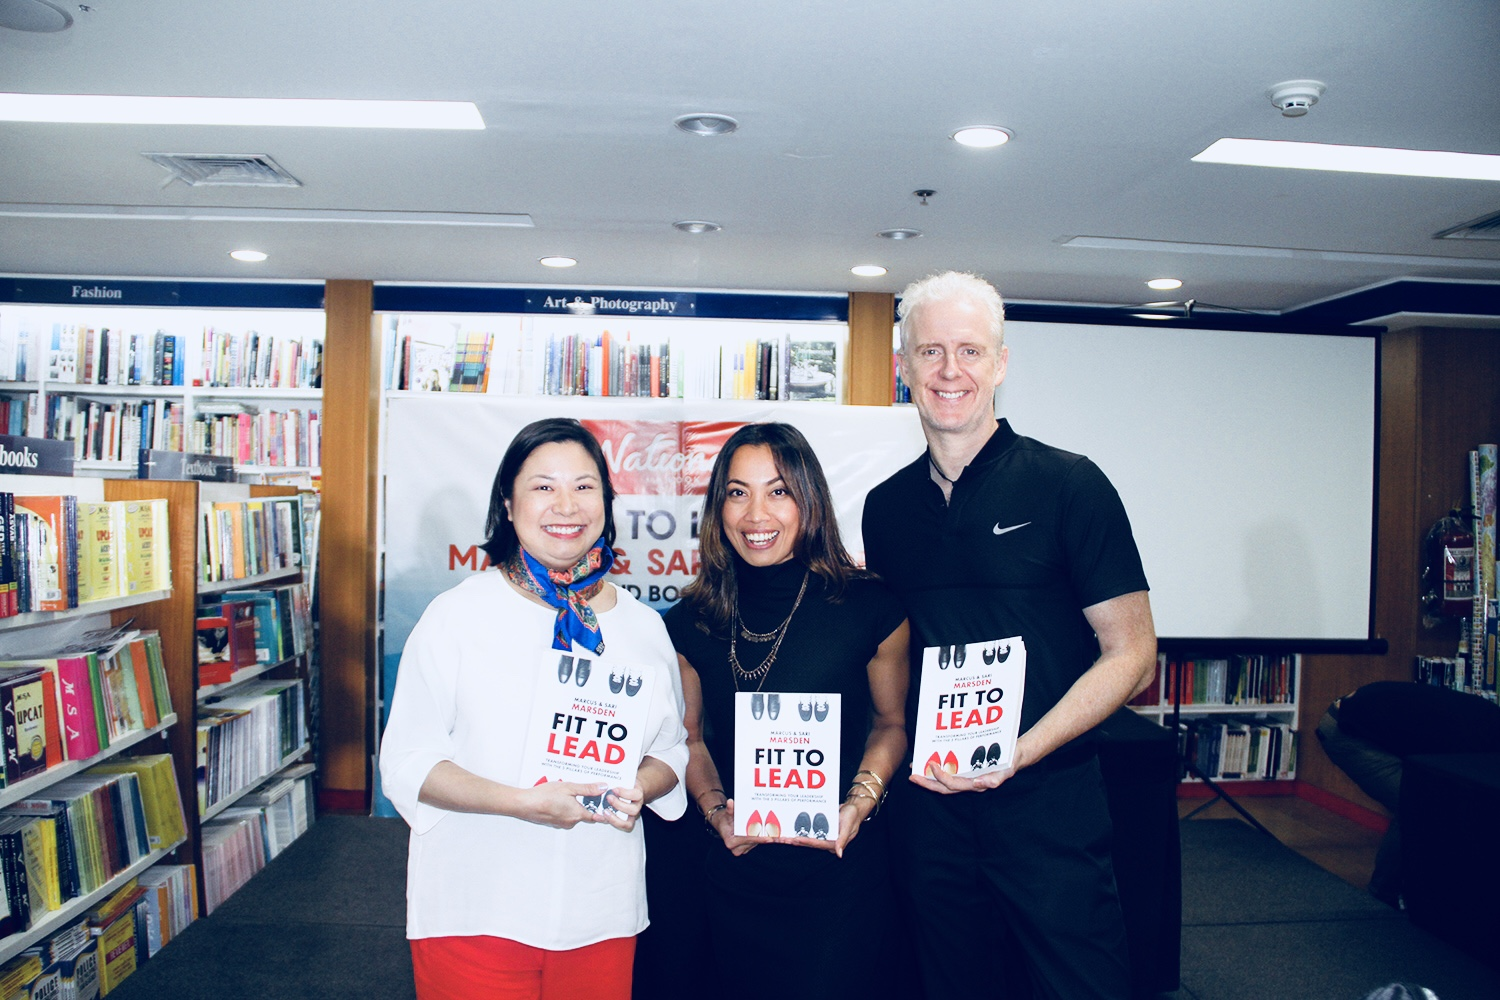 FIT TO LEAD TALK AND BOOK SIGNING IN MANILA. - MANILA, DECEMBER 2, 2017We had a wonderful time at the talk and book signing at National Book Store Shangri-la Plaza Mall, Manila just now.We appreciate the support, the enthusiasm and the questions from those who joined our conversation.Happy to announce that FIT TO LEAD is now available at National Book Store Shangri-la Plaza Mall and Power Books, Manila.Grab your copy!